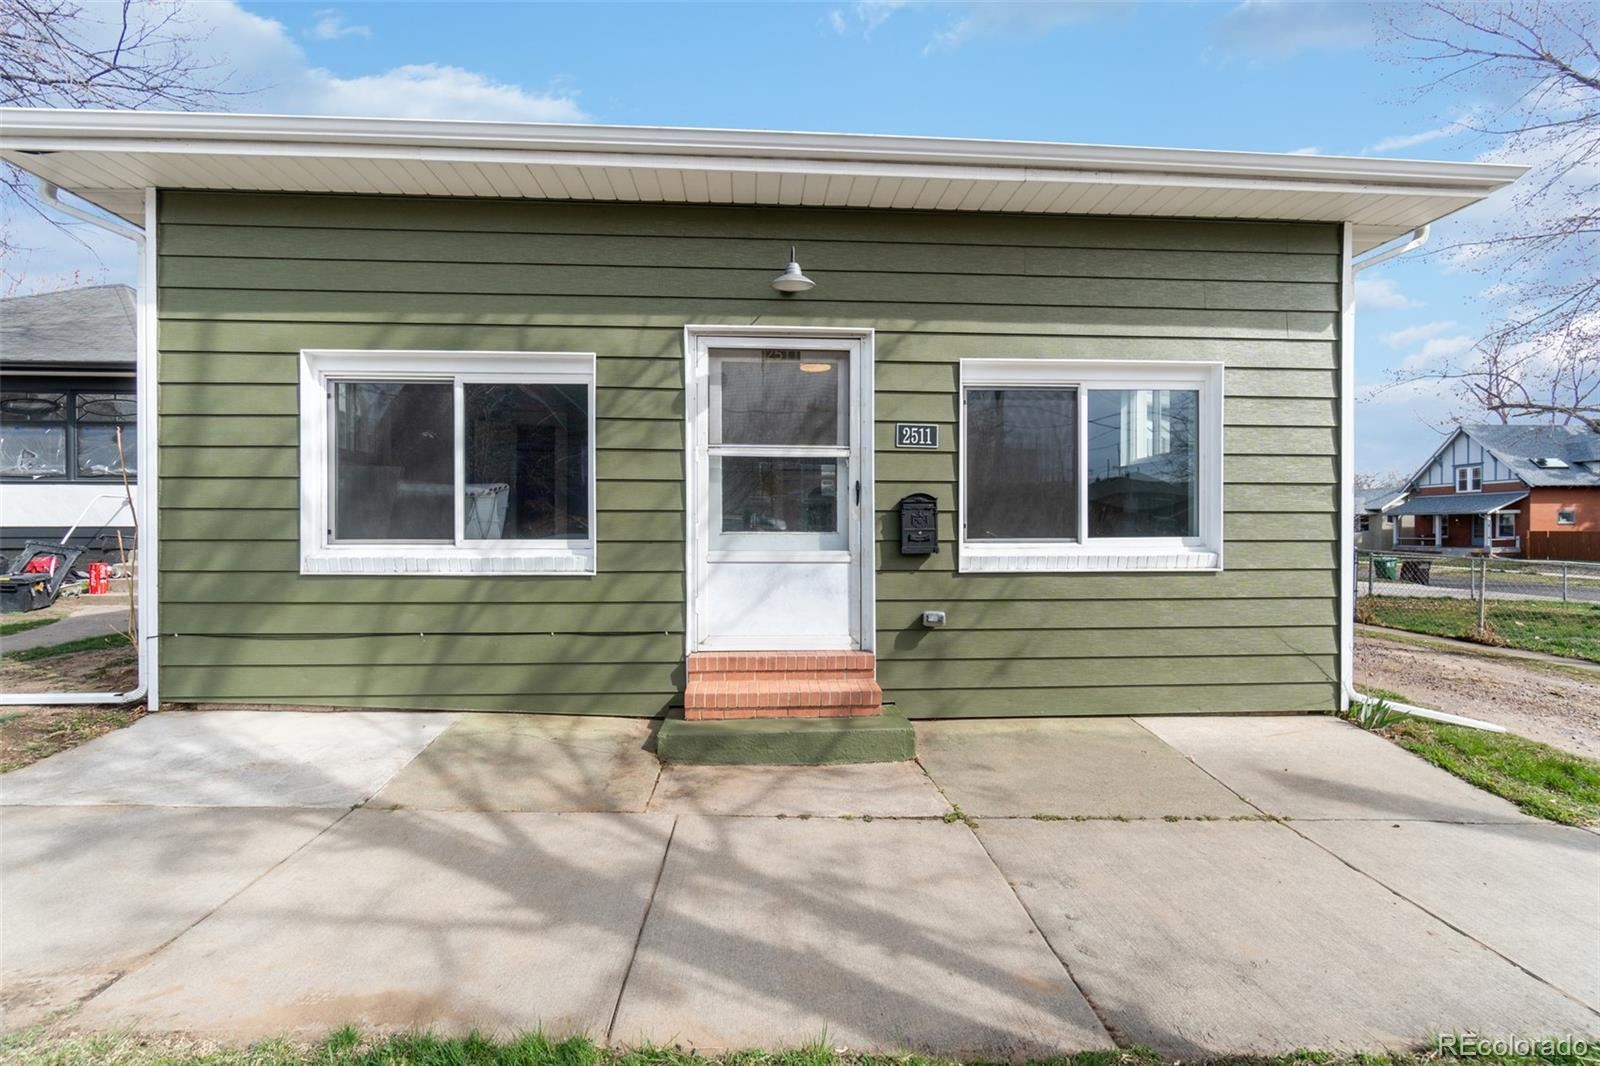 2511 W 44th Avenue, Denver, CO 80211 - #: 4169342